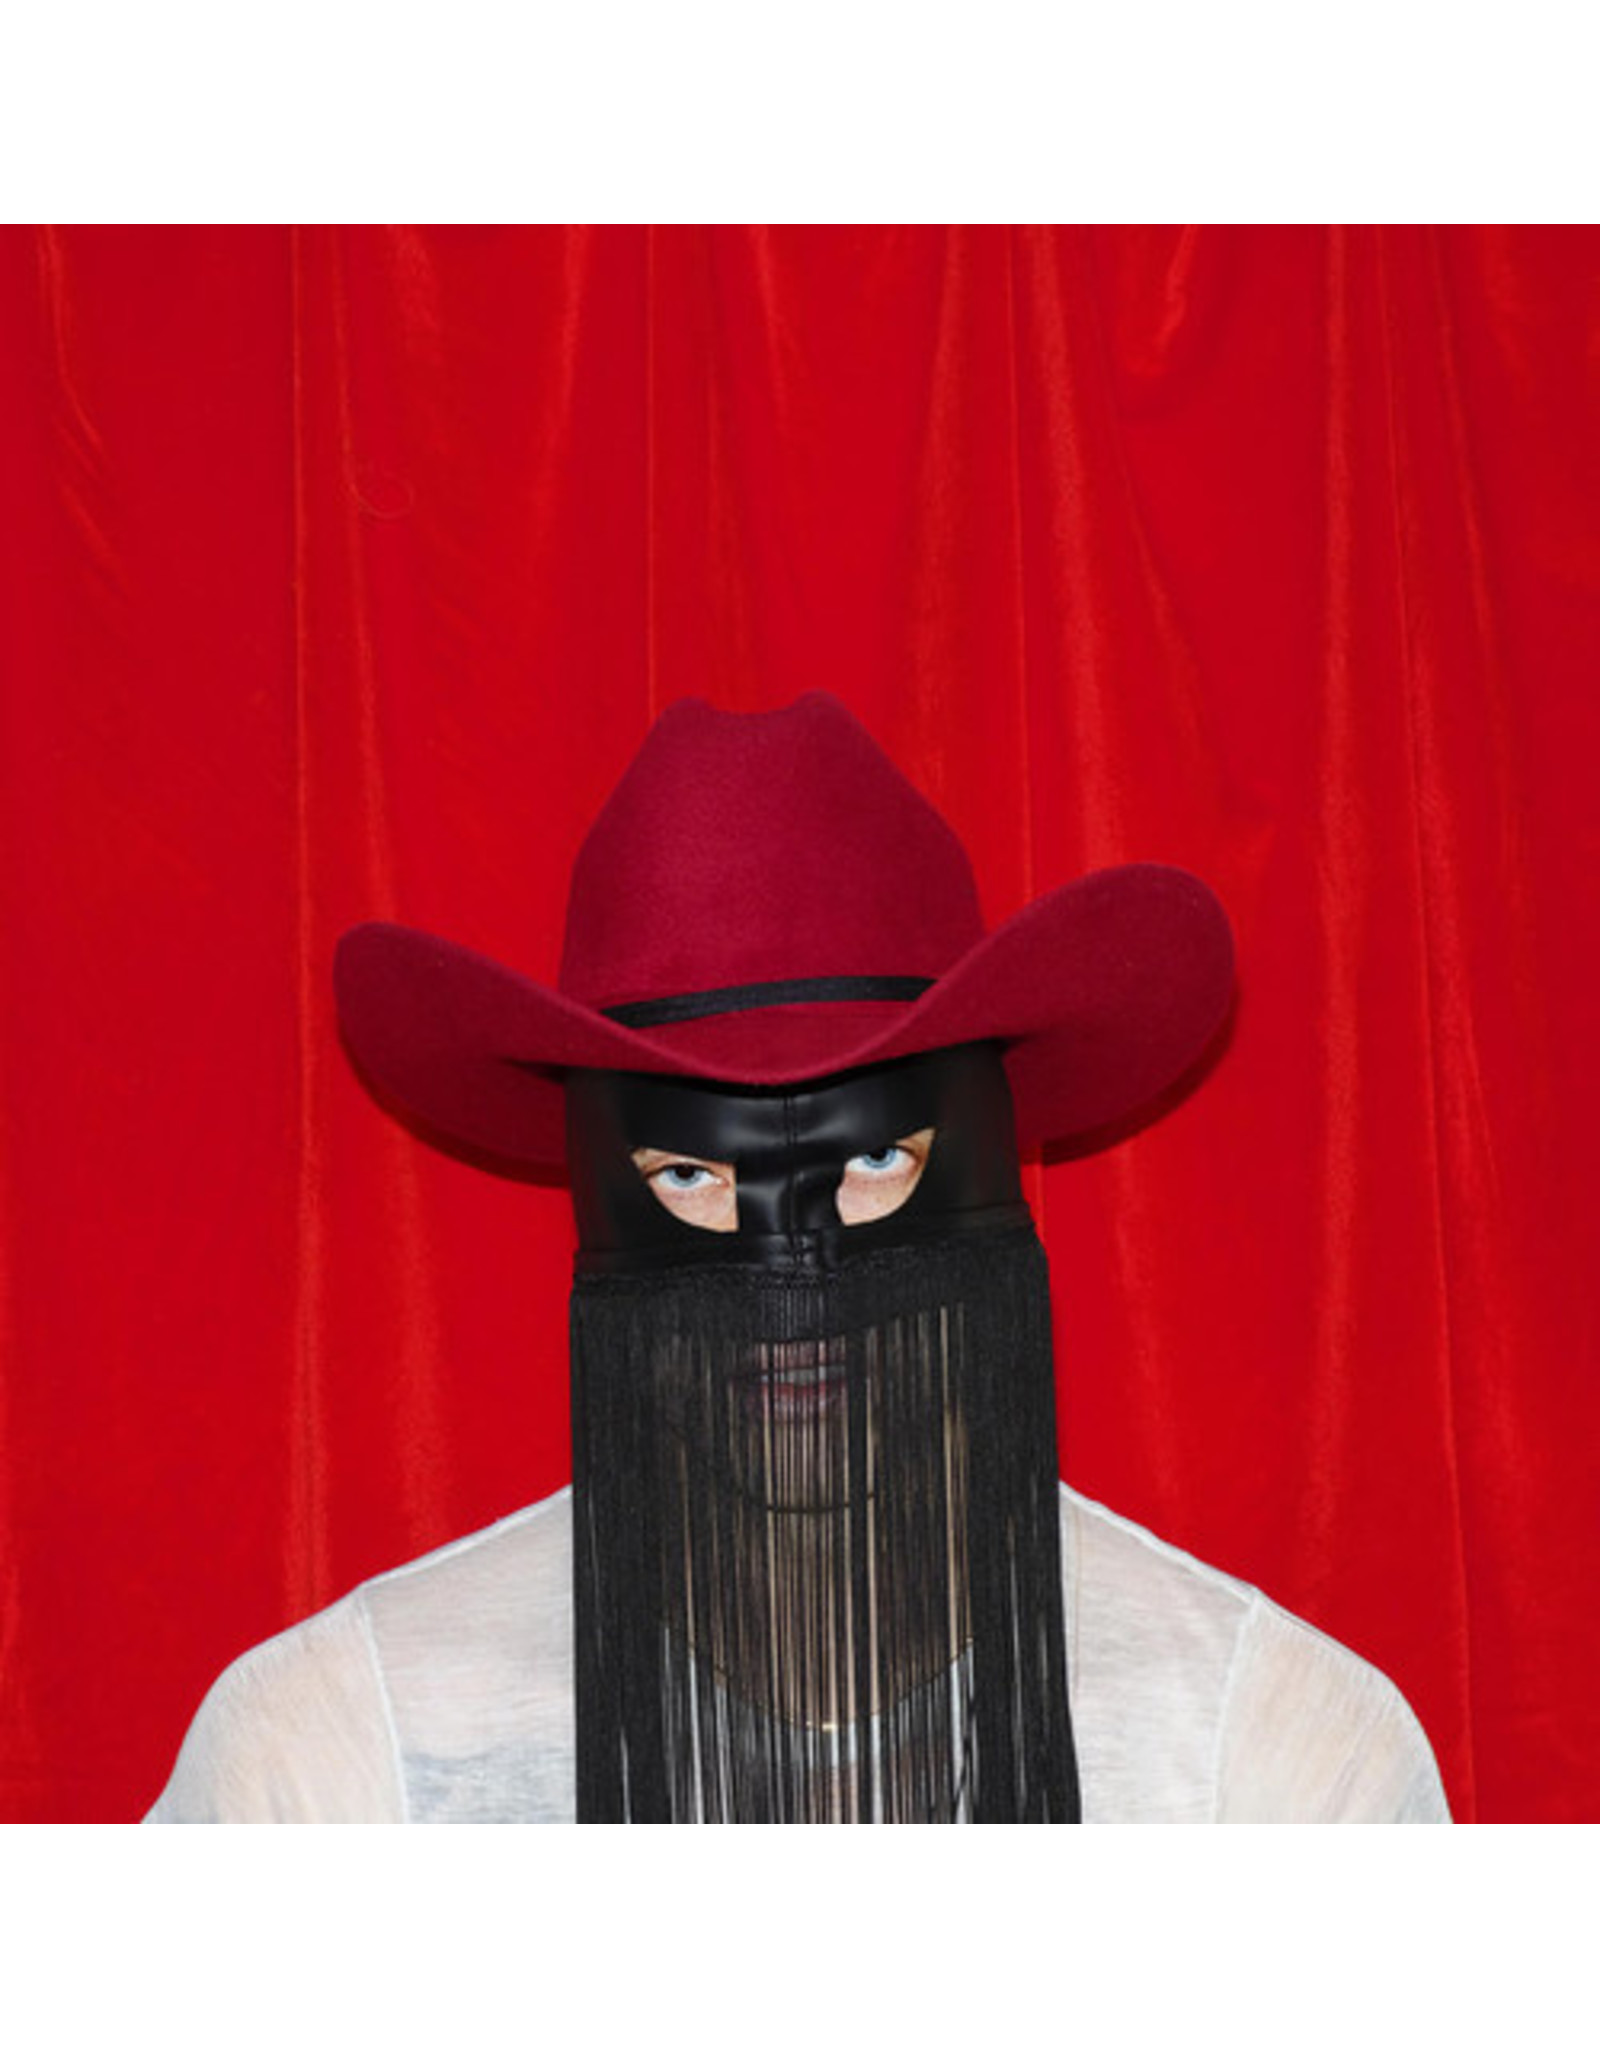 New Vinyl Orville Peck - Pony LP